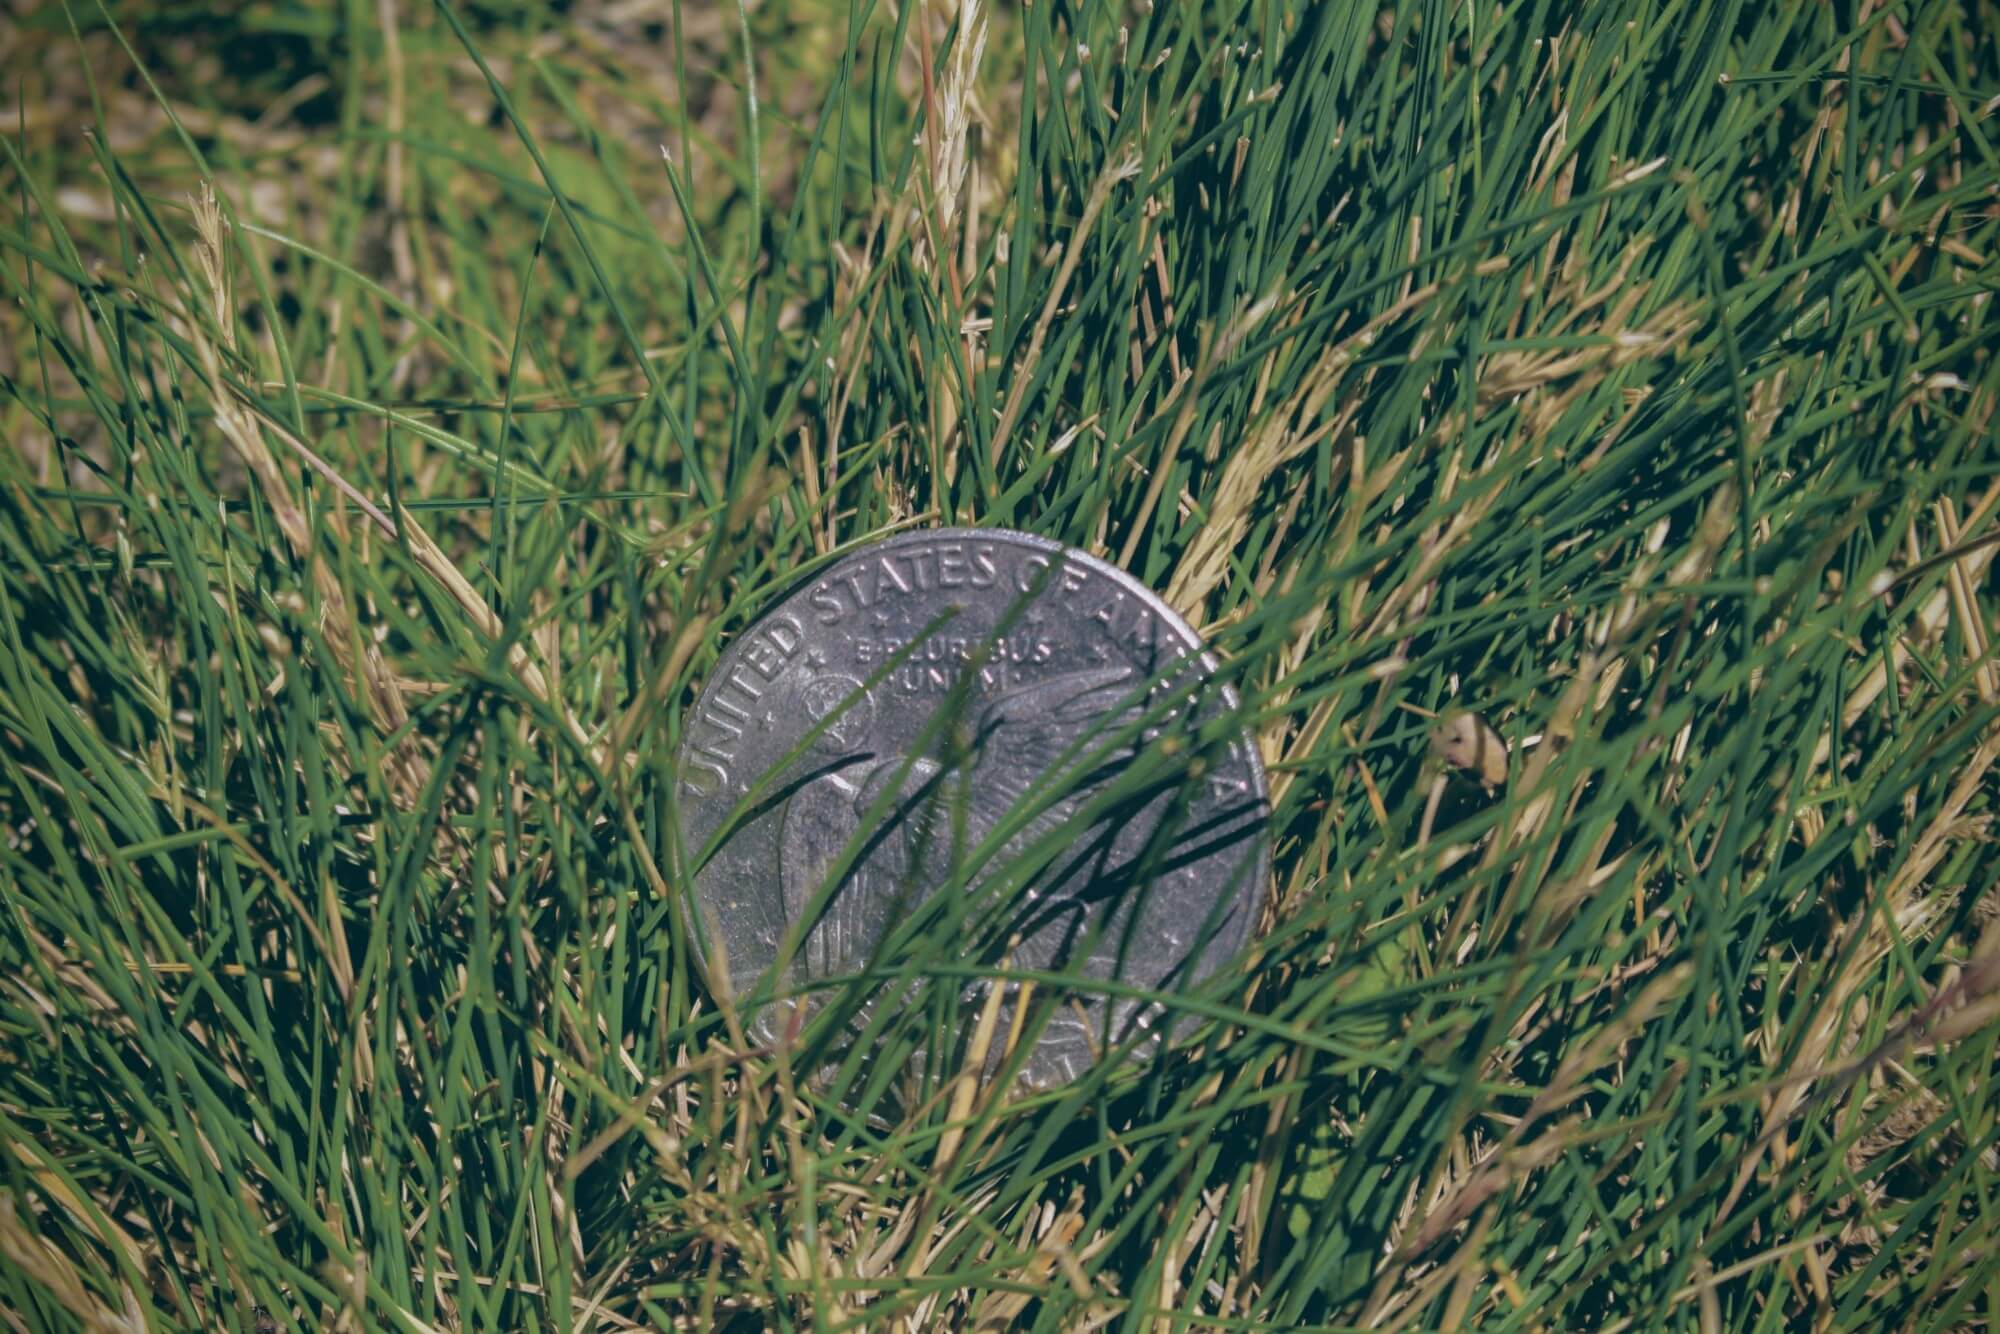 Quarter on its side in the grass